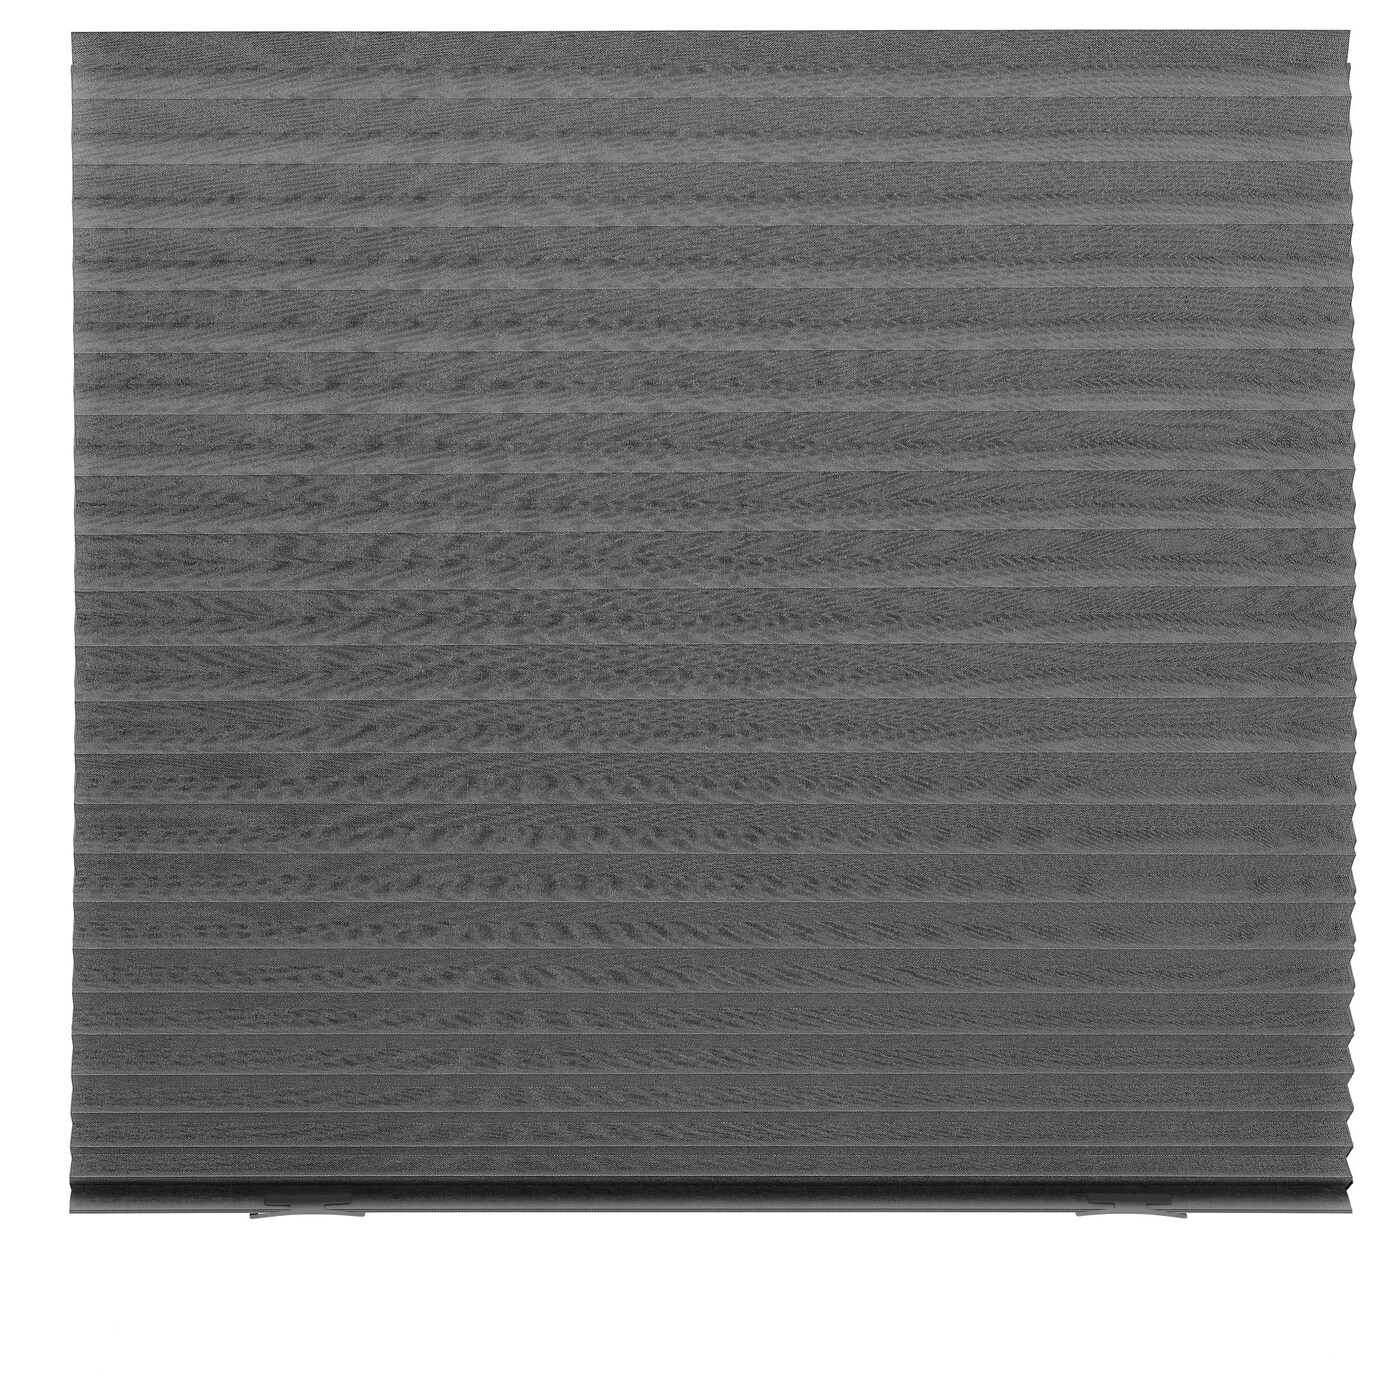 Ikea Vinter 2016 Teppich Vinter 2016 Pleated Blind Grey 100x190 Cm Ikea